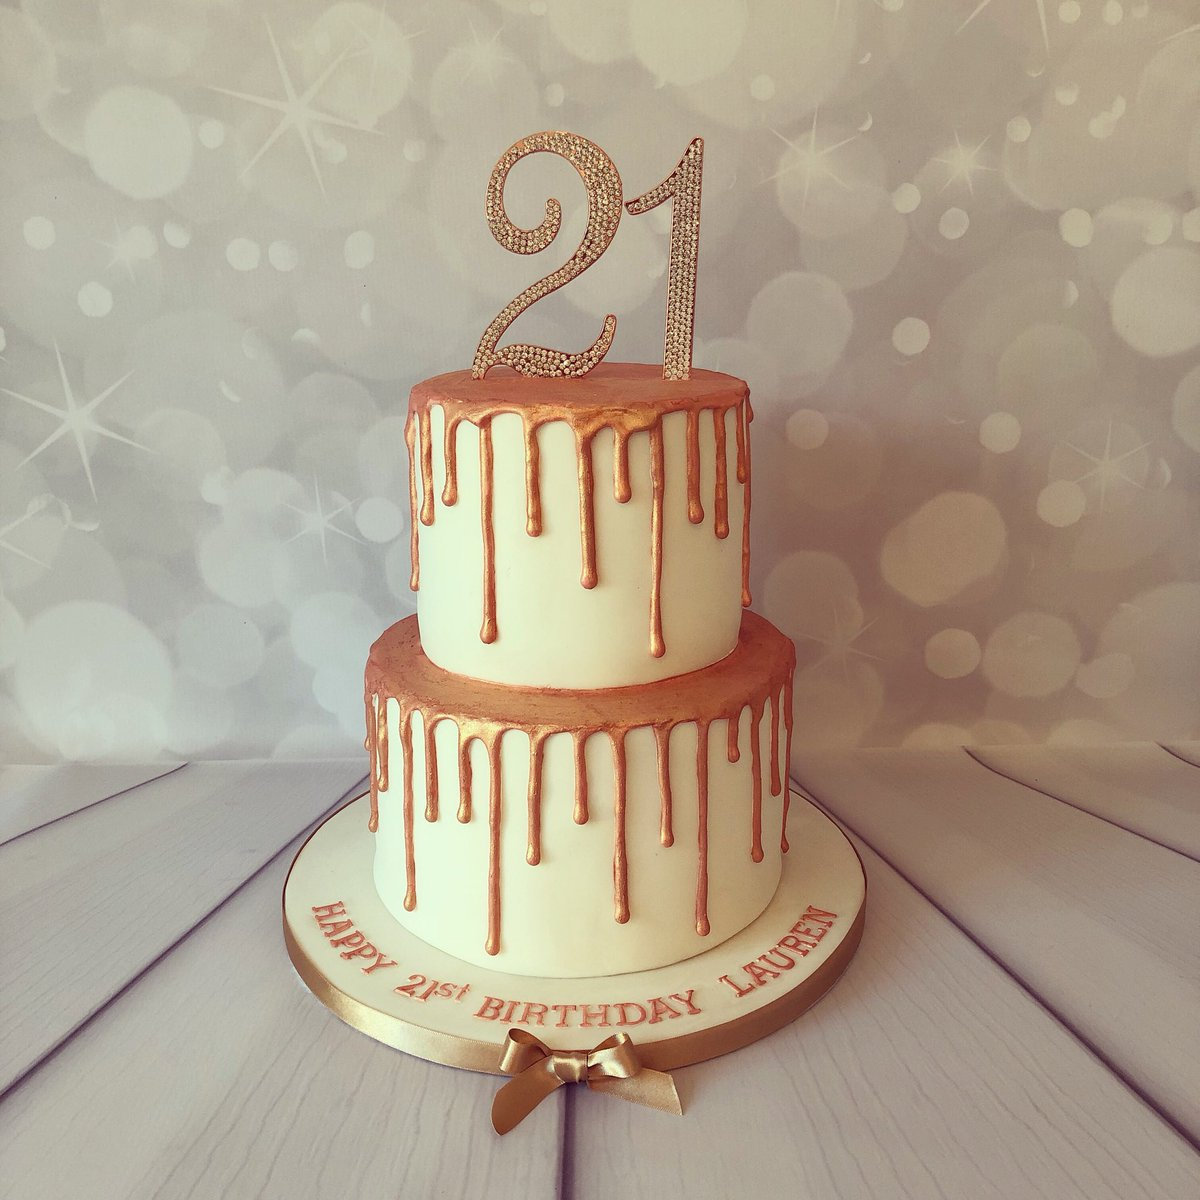 Sensational 21St Birthday Cakes Rose Gold Top Birthday Cake Pictures Photos Personalised Birthday Cards Veneteletsinfo